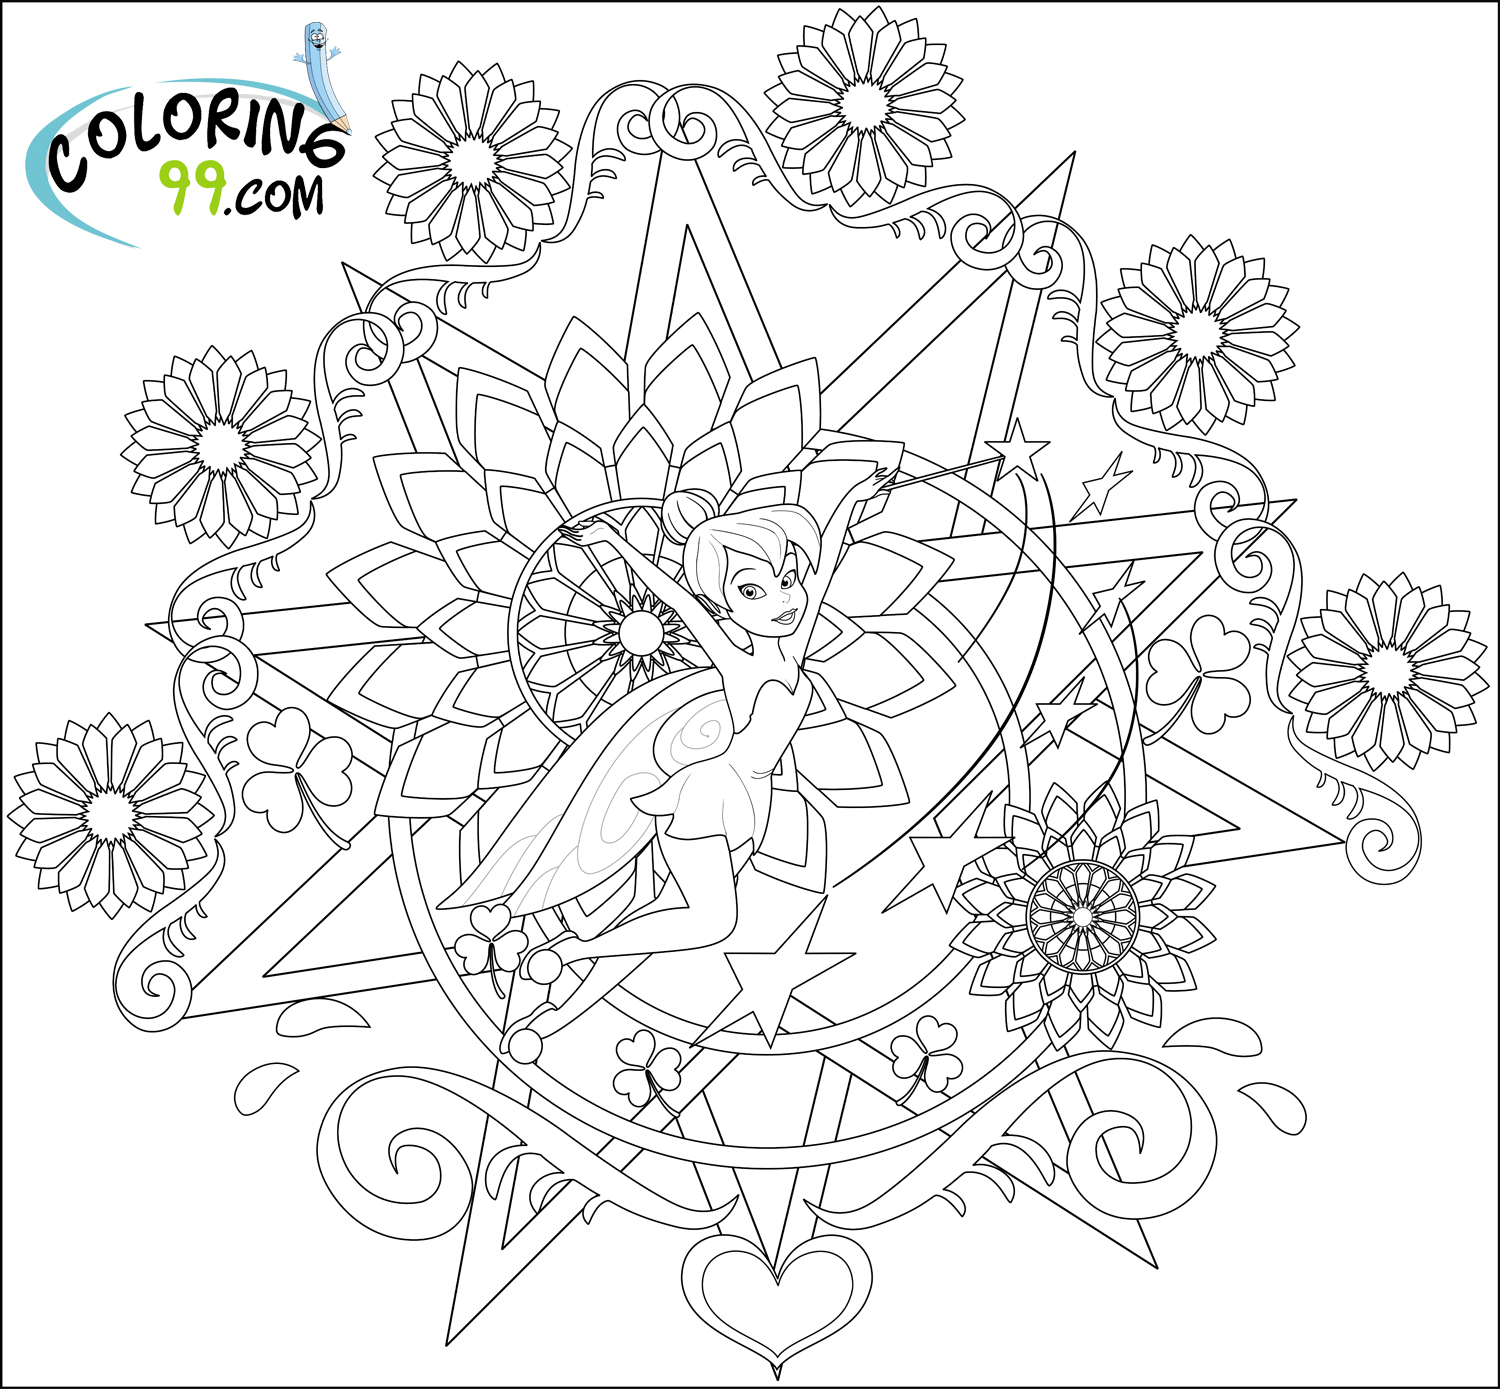 tinkerbell coloring fairy coloring pages tinkerbell coloring